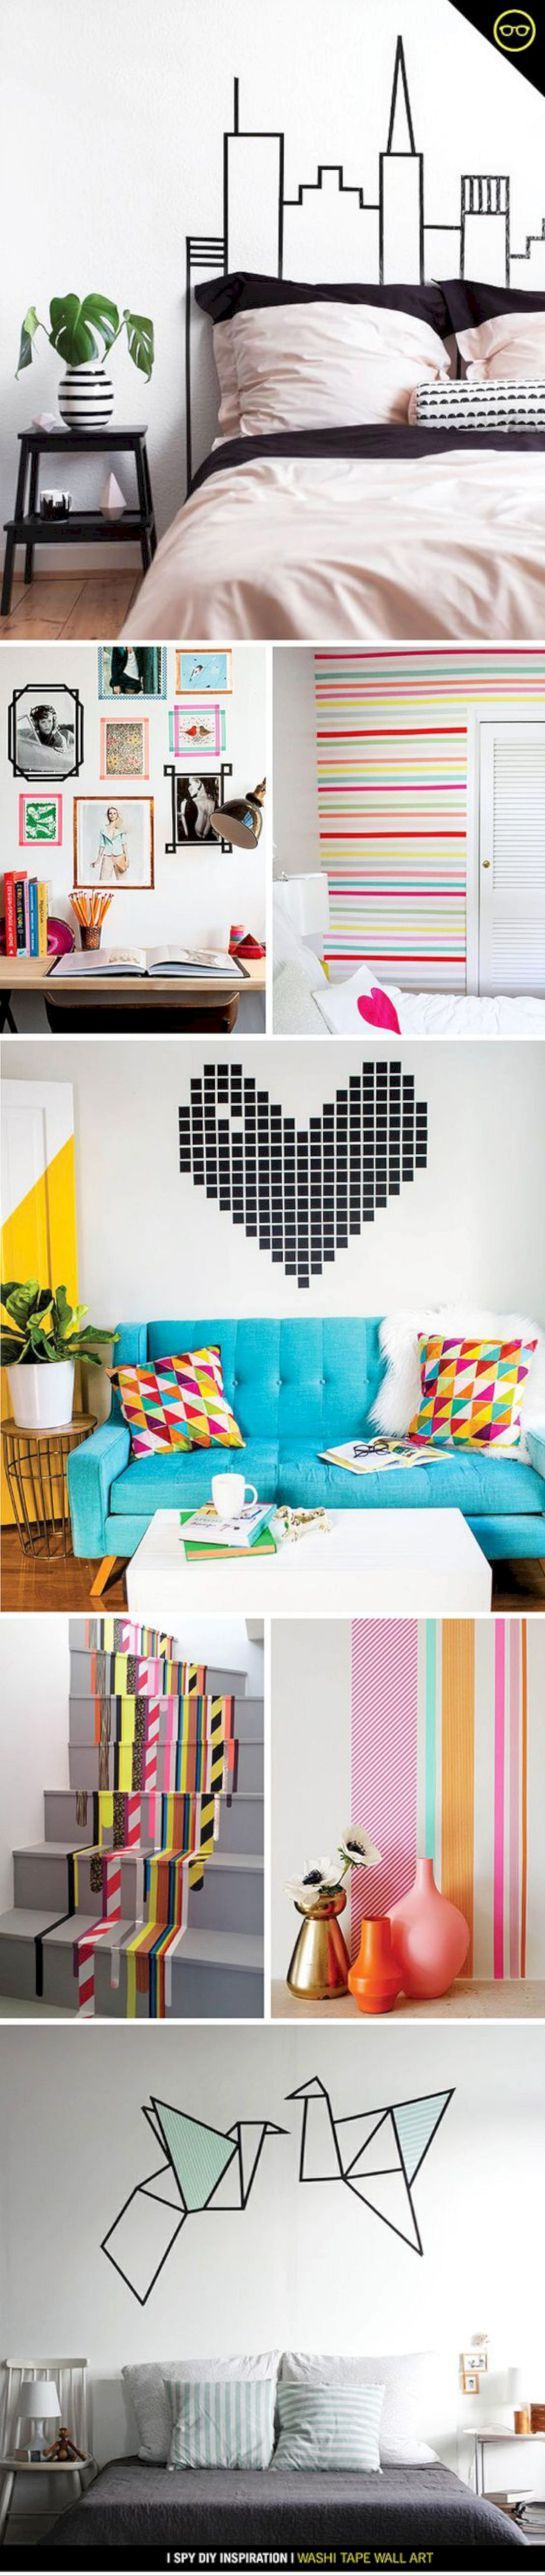 15 Awesome Wall Decorating Ideas To Ditch Your Bare Wal 6